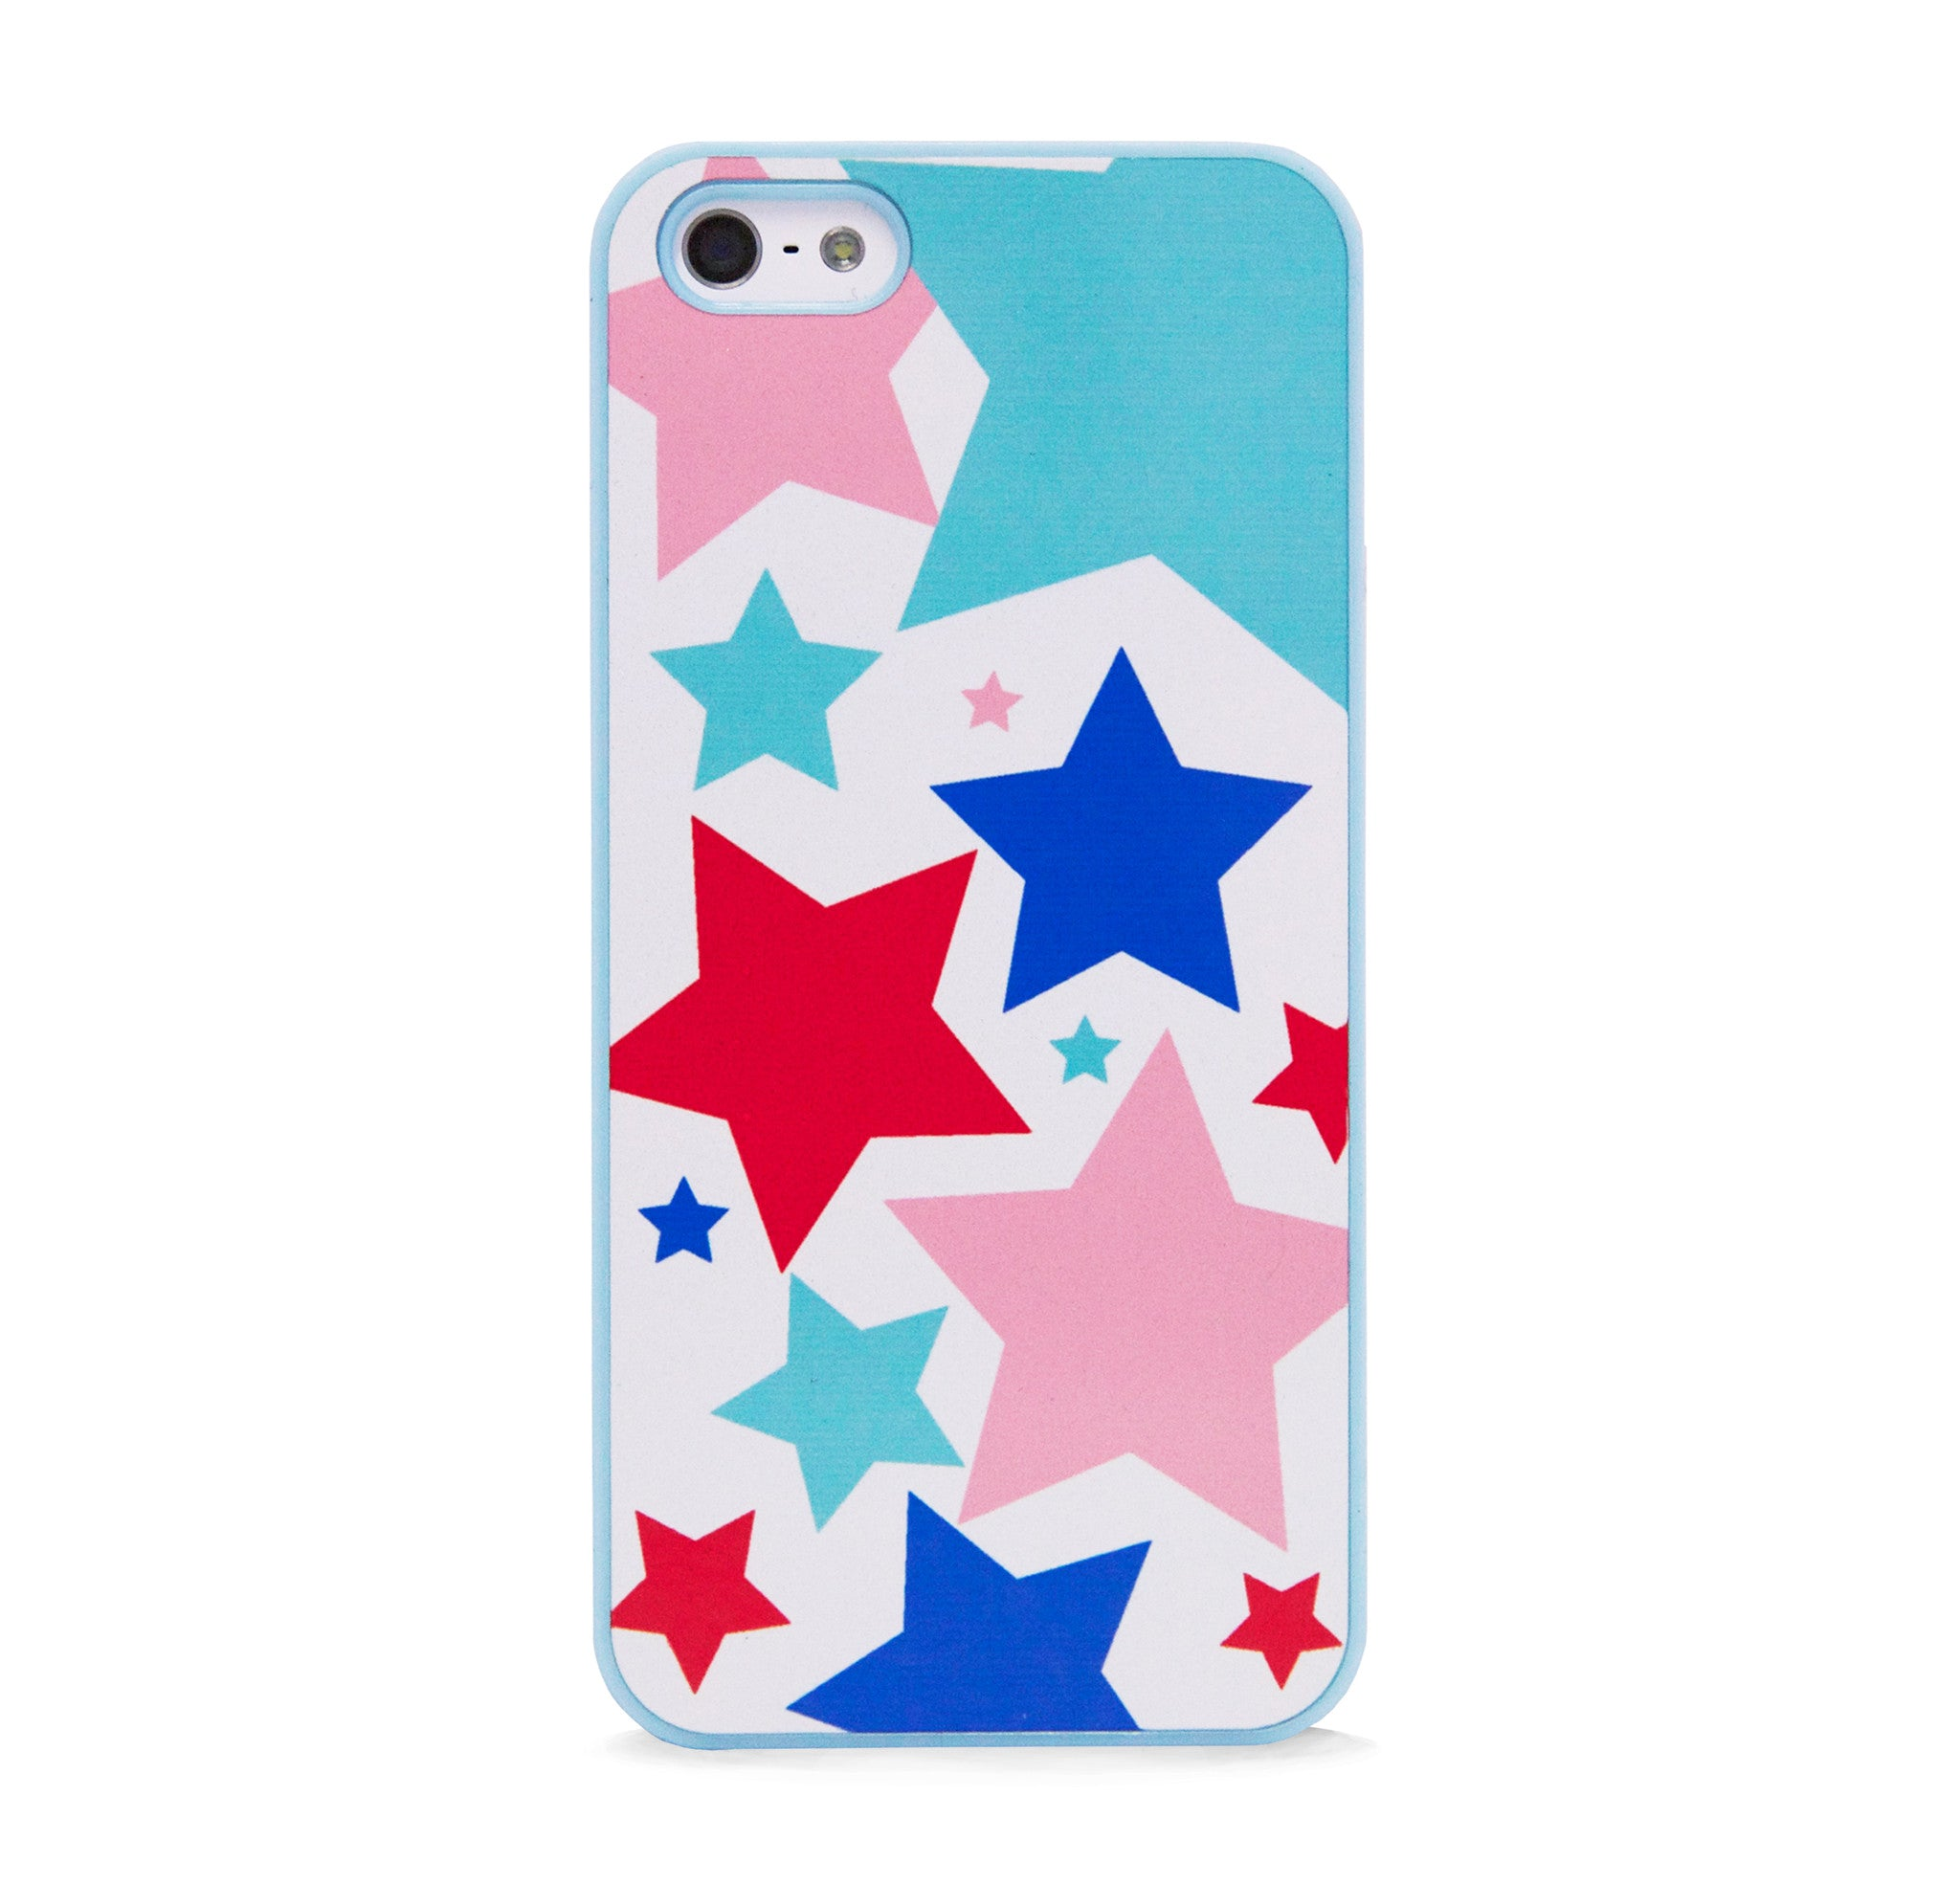 MULTI STAR ALLOVER FOR IPHONE 5/5S